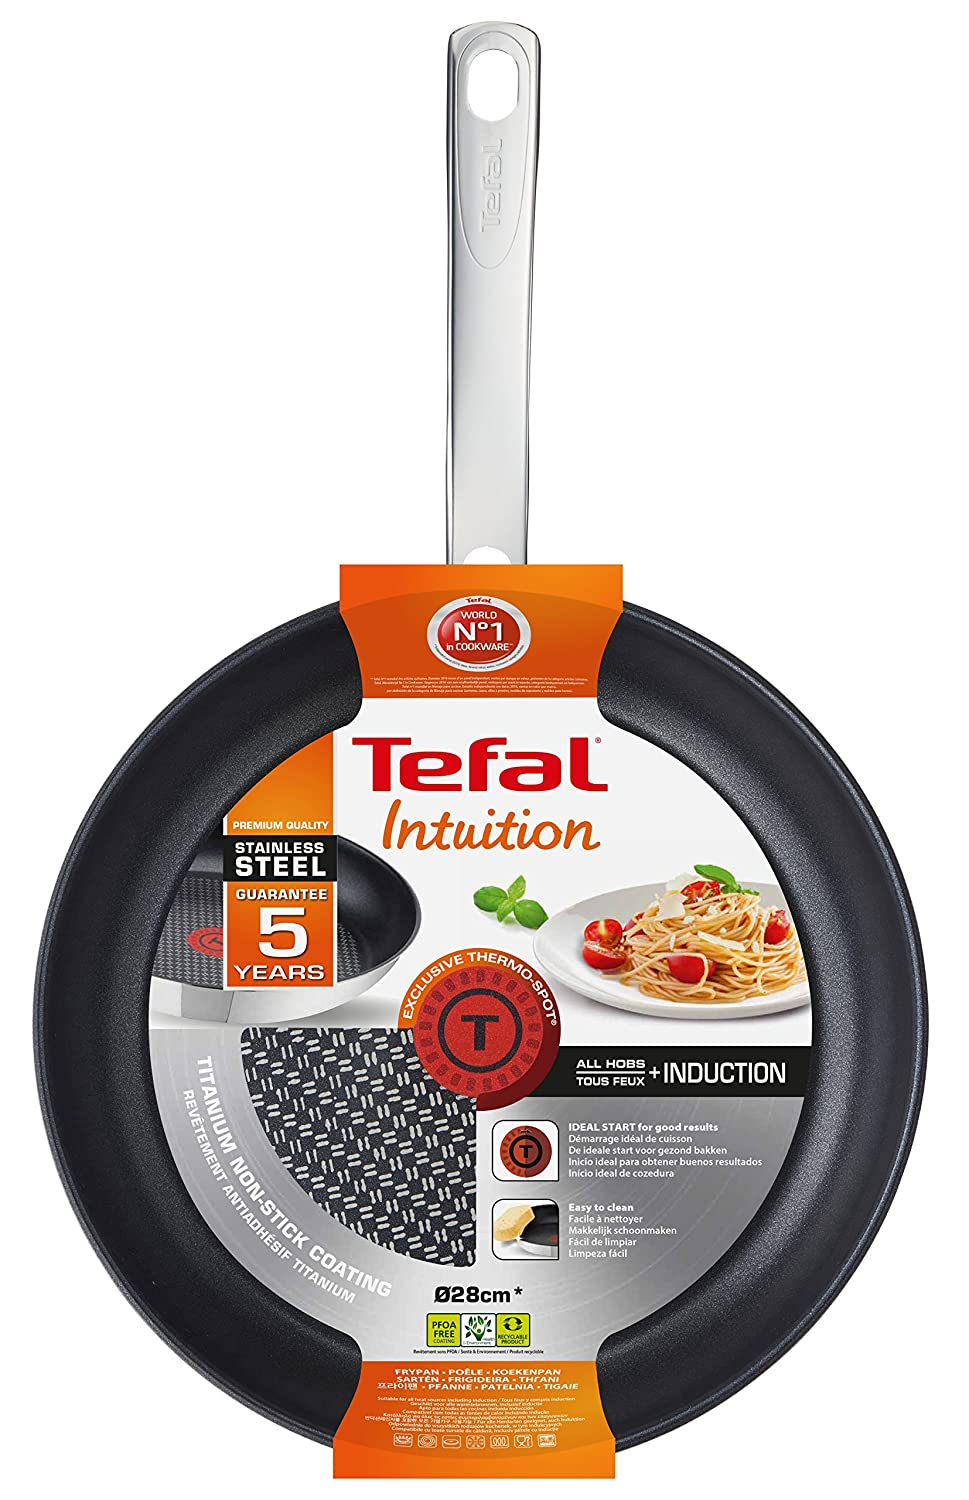 Tefal a7030744 Intuition Cacerola Acero Inoxidable 50,2 x 31,4 x 8,6 cm: Amazon.es: Hogar